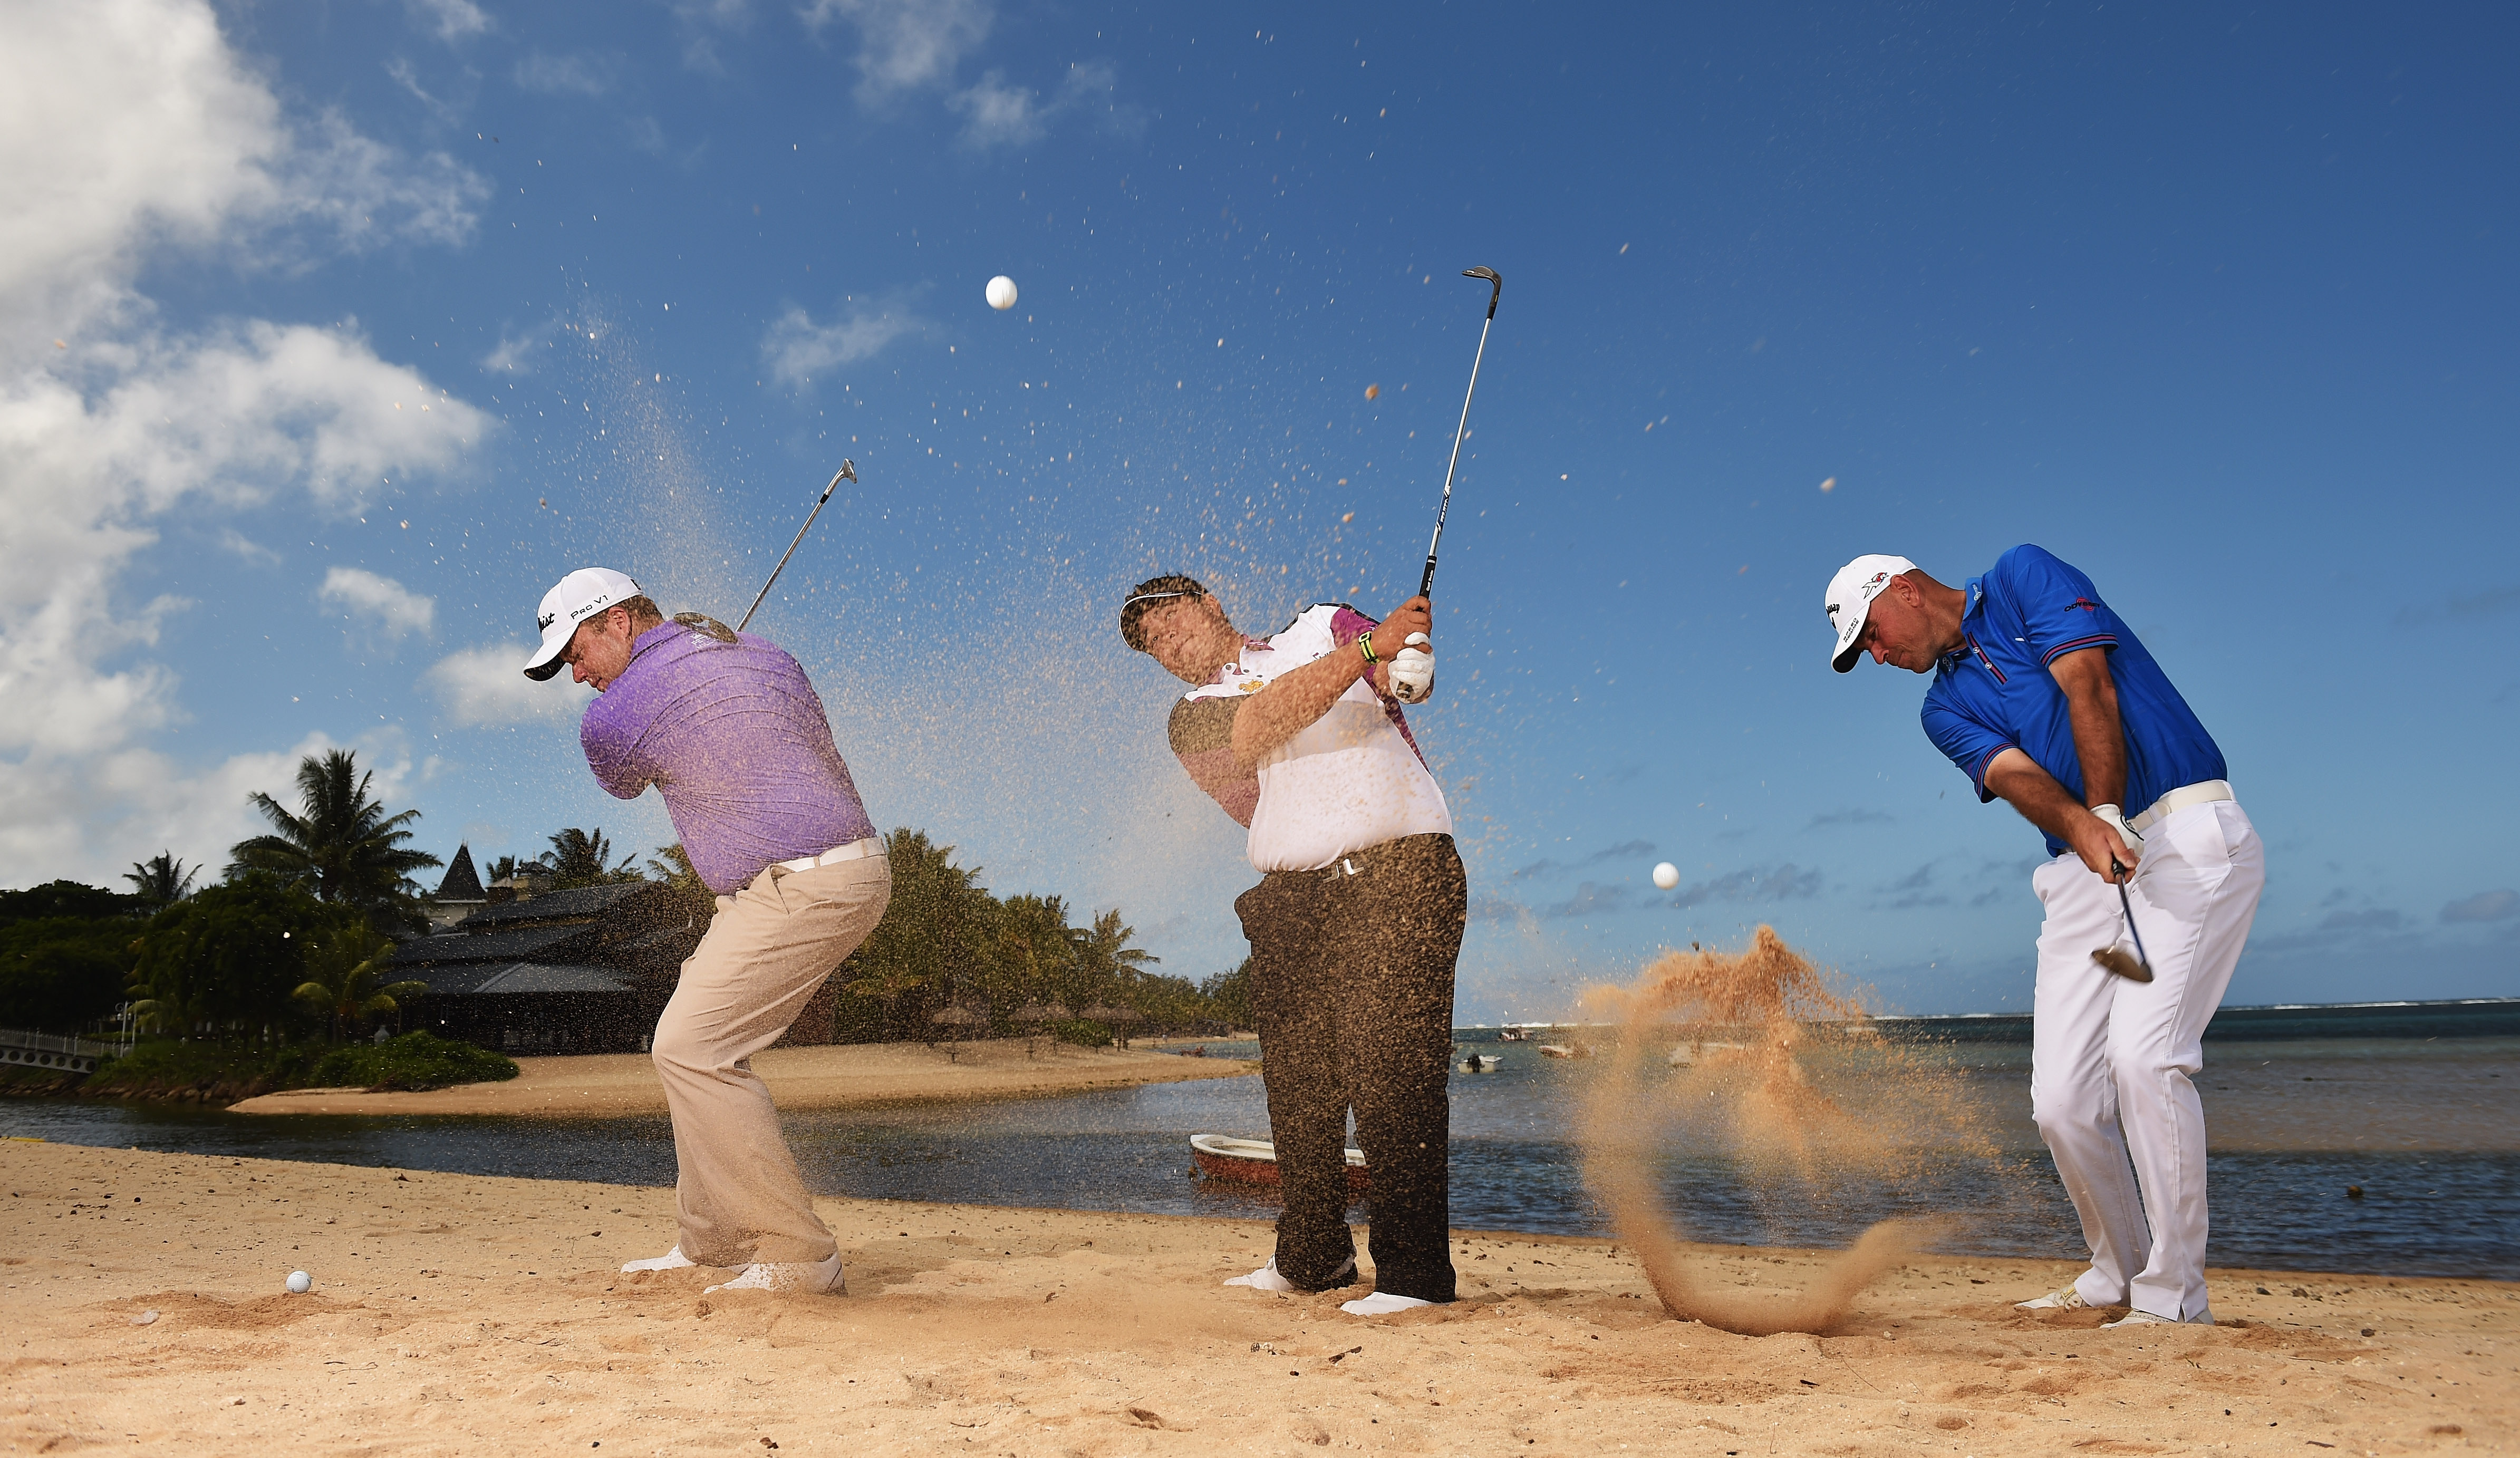 George Coetzee, Kiradech Aphibarnrat and Thomas Bjorn hit shots on the beach ahead of the Mauritius Open (Photo: Stuart Franklin/Getty Images)